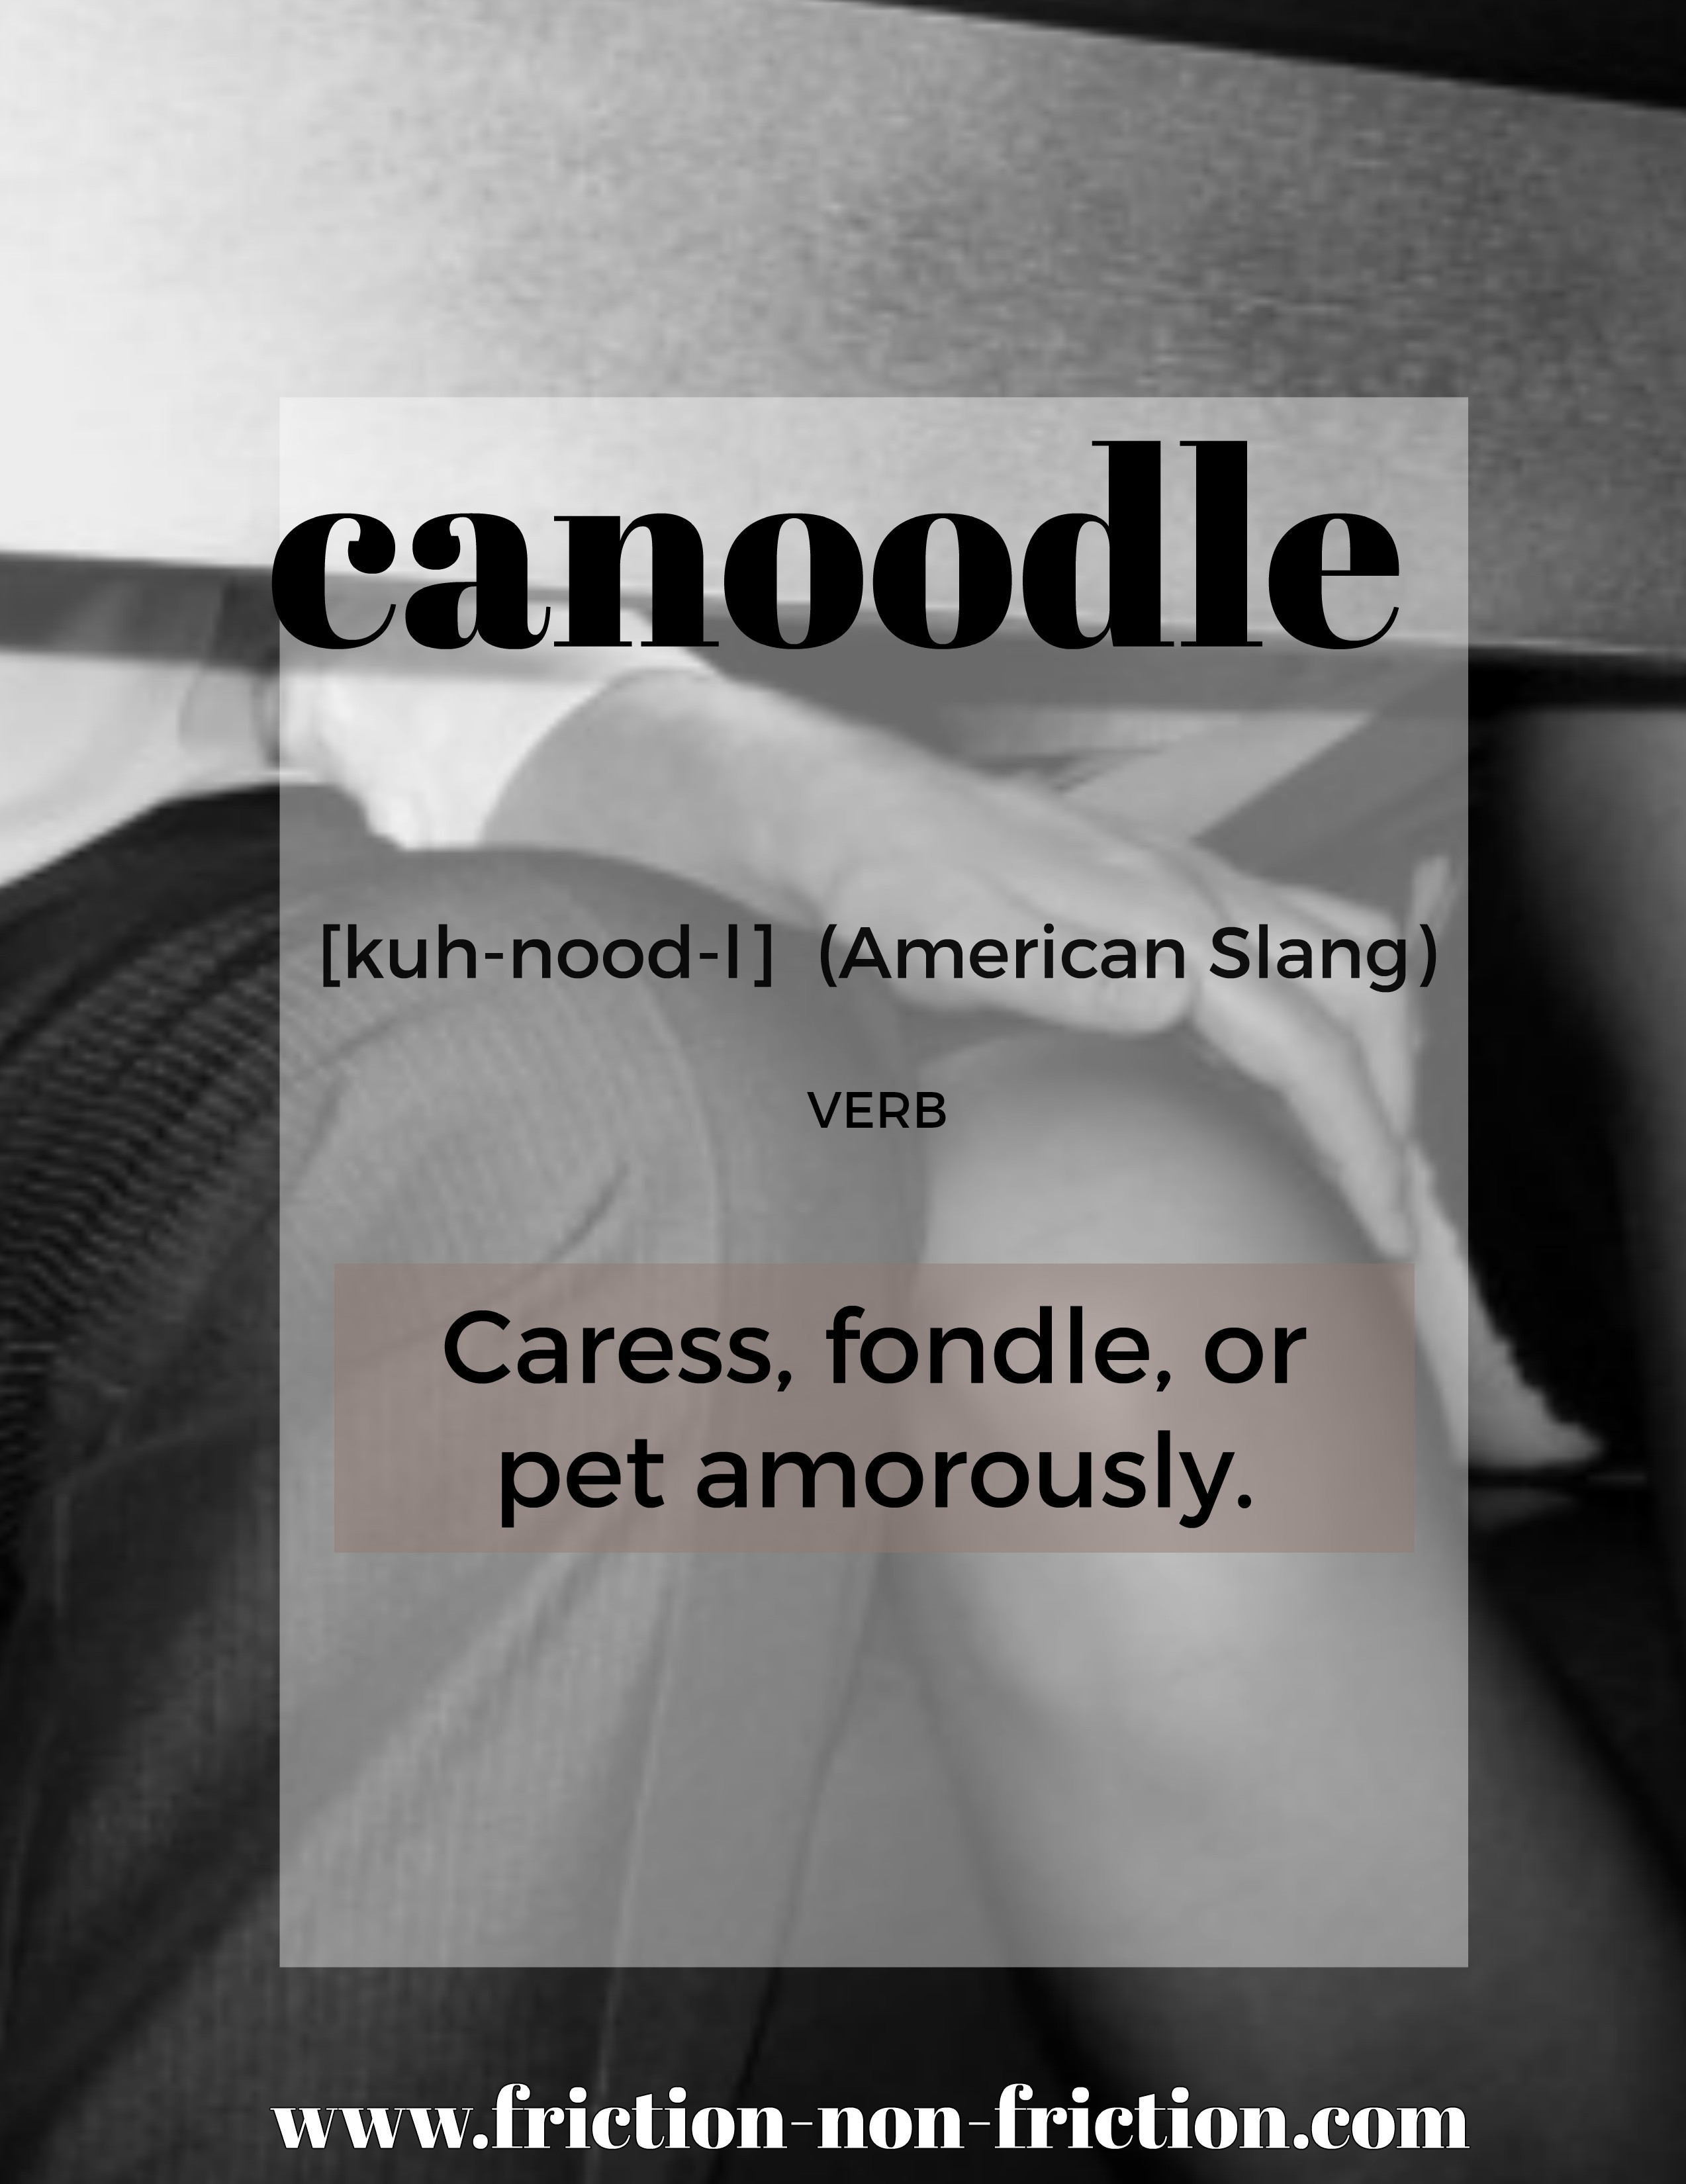 Canoodle -- another great FRICTIONARY definition from Friction non Friction